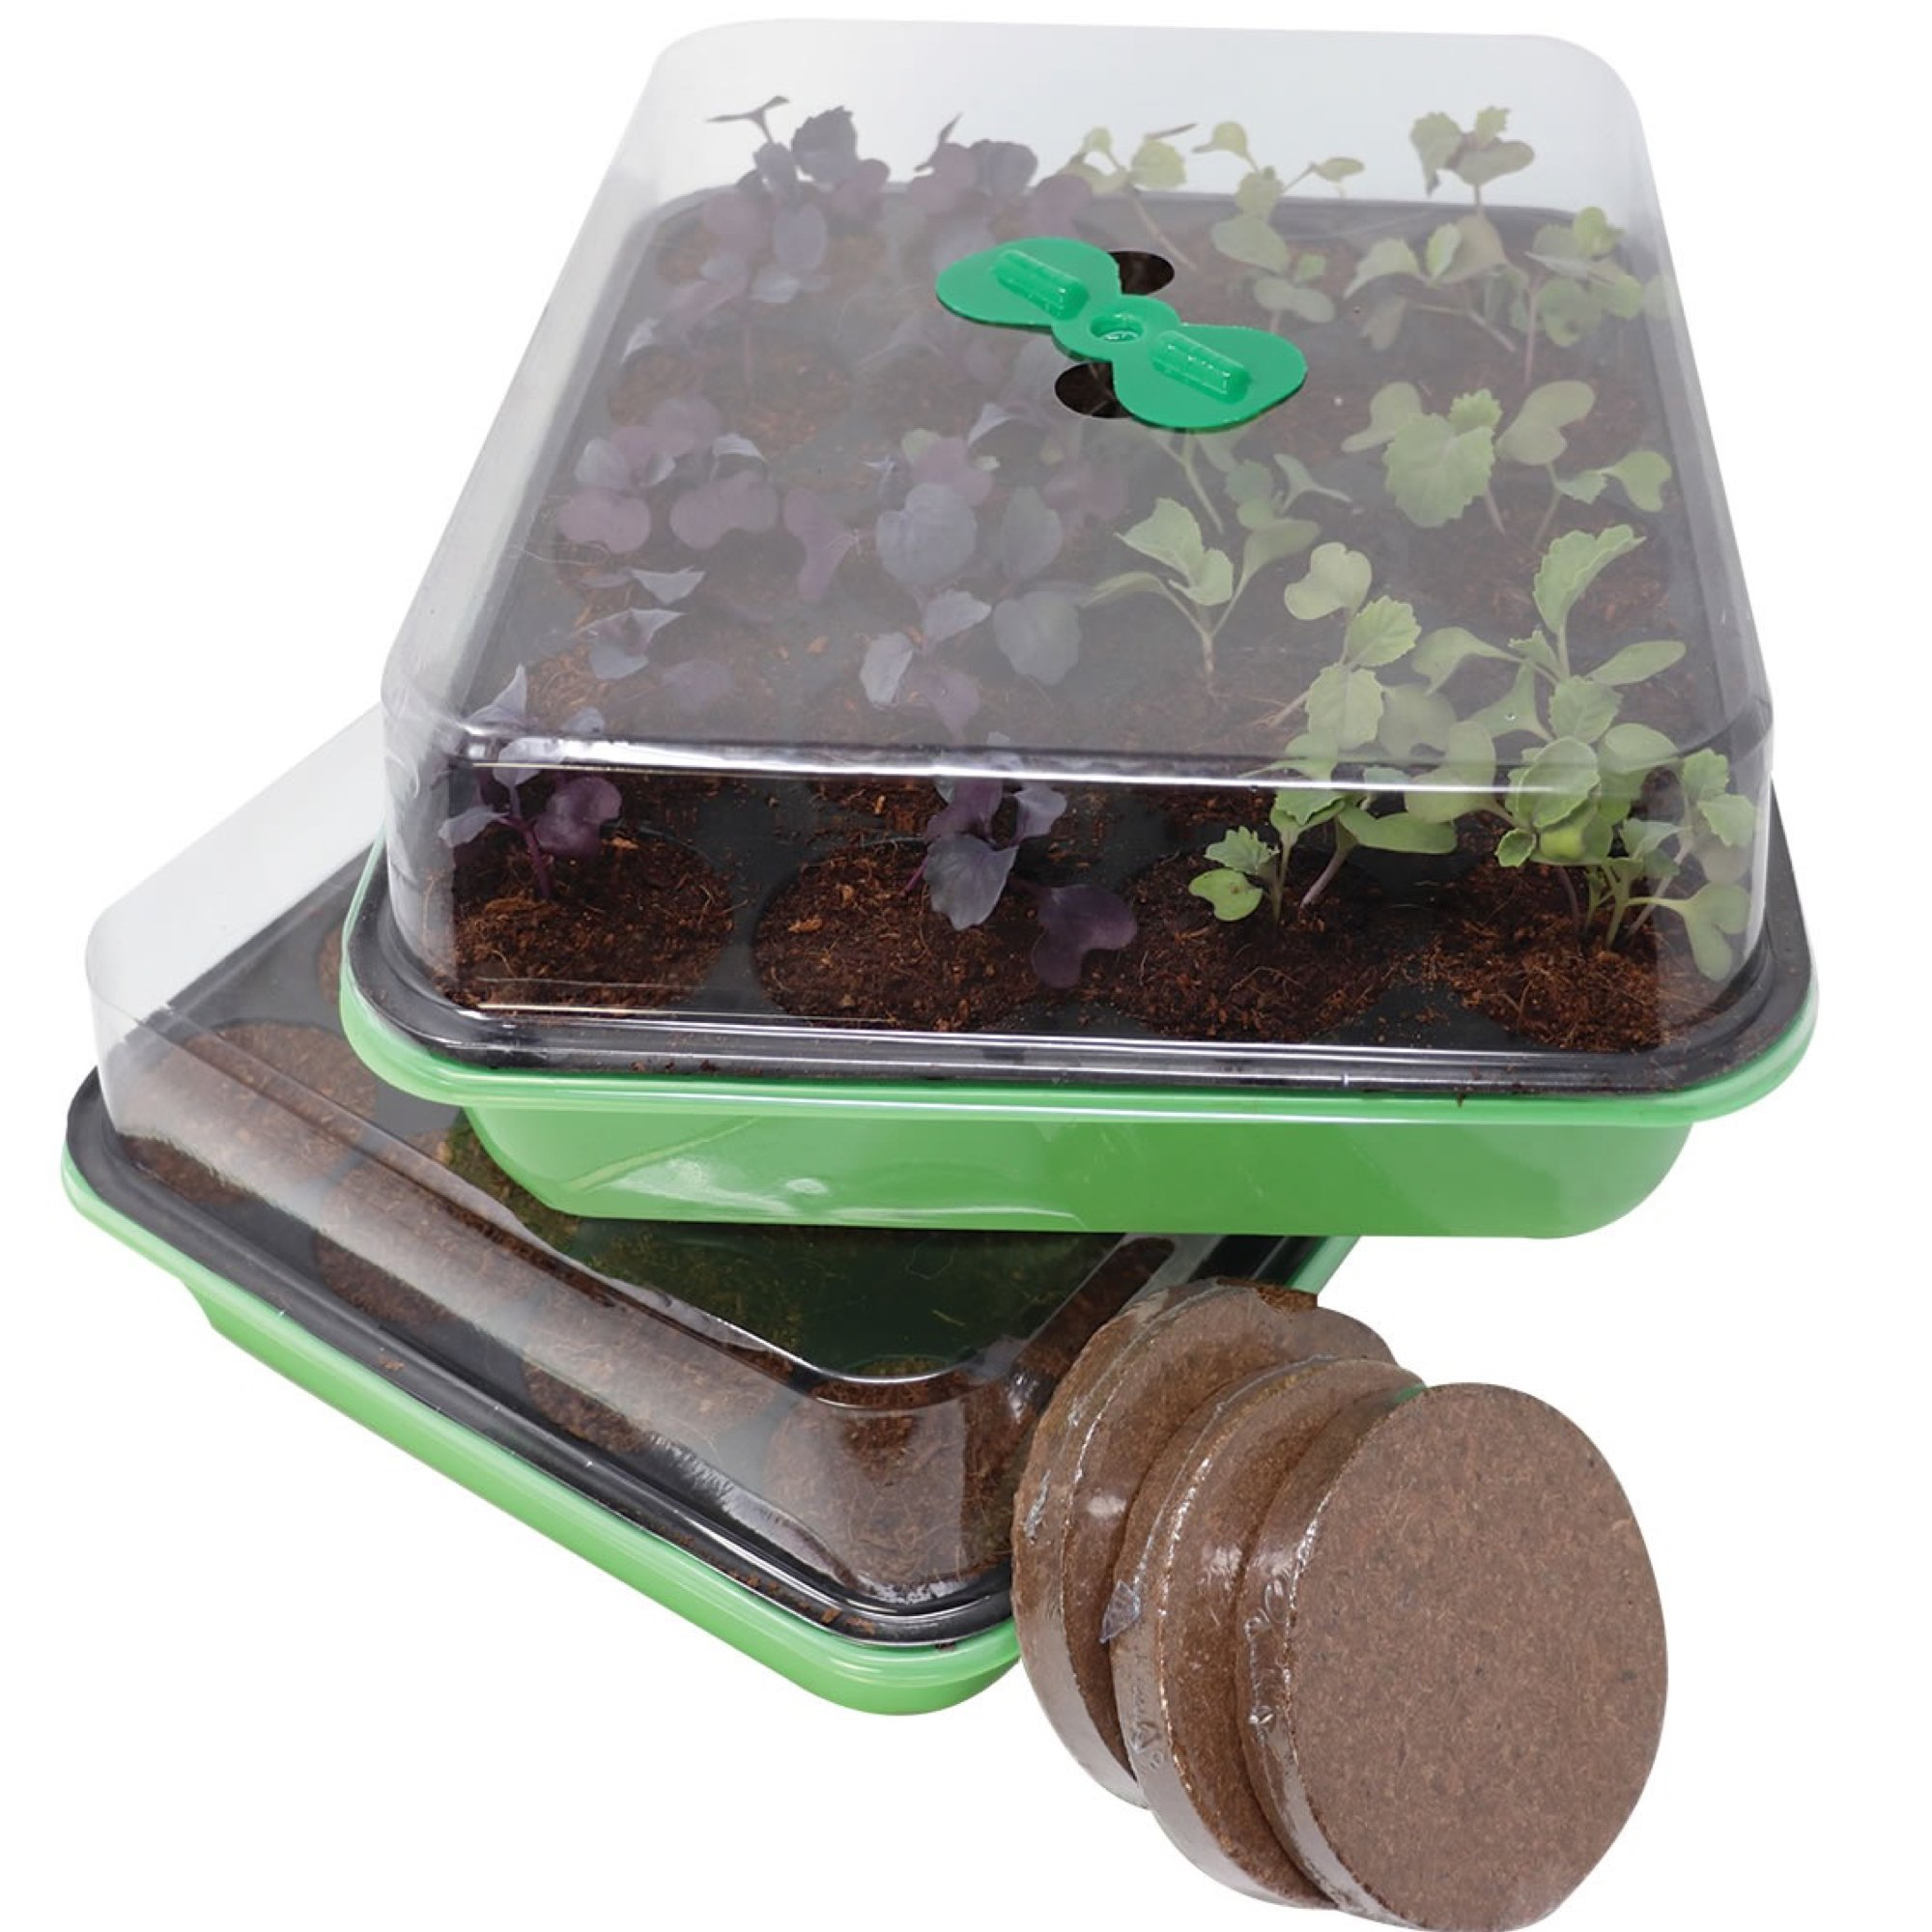 Two 20 Cavity Seed Germination Trays – Complete with Fiber Soil and Ventilated Greenhouse Covers. Grow Seedlings Near a Window Or Under Lights. Transfer Plants to Pots Or Garden. Sturdy and Reusable. by Window Garden